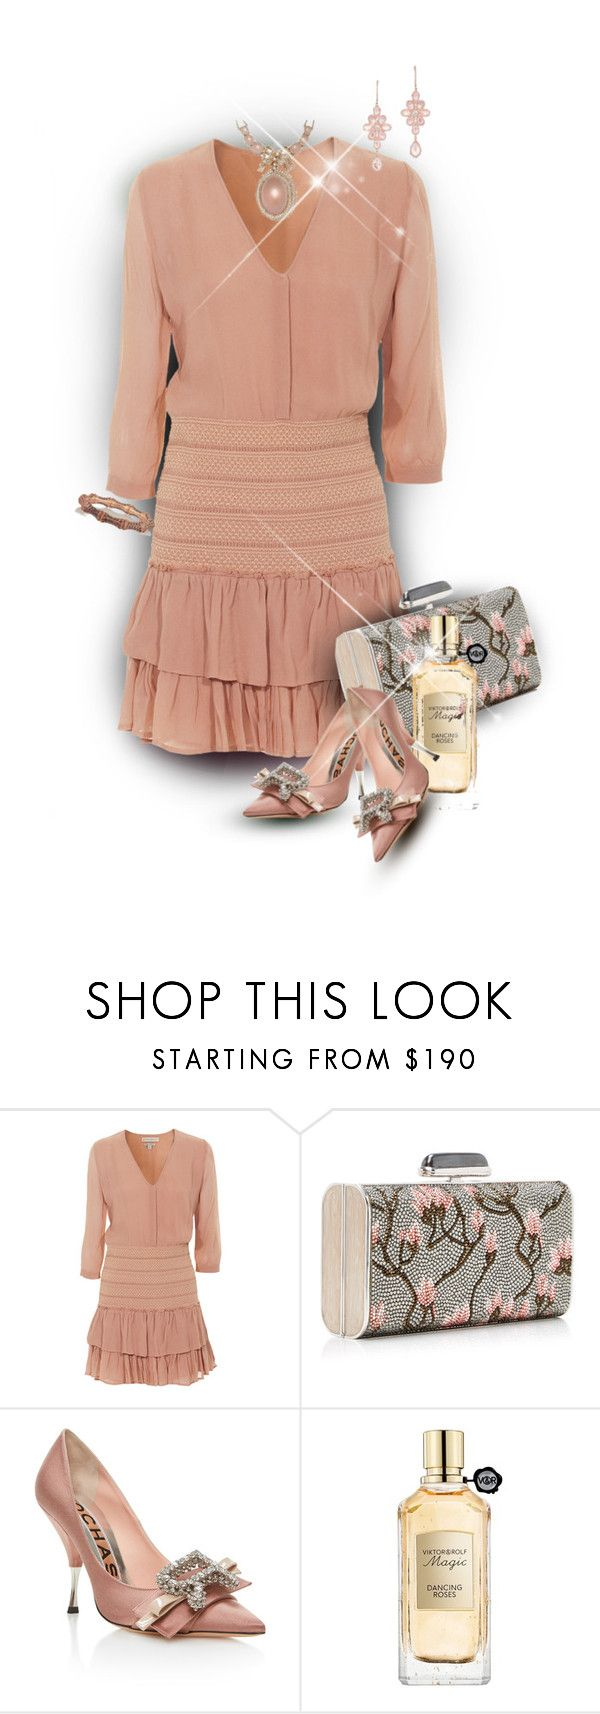 """""""Lovely Nude Pink Party Dress"""" by franceseattle ❤ liked on Polyvore featuring Paul & Joe Sister, Rochas, Viktor & Rolf, Anne Sisteron and Gucci"""